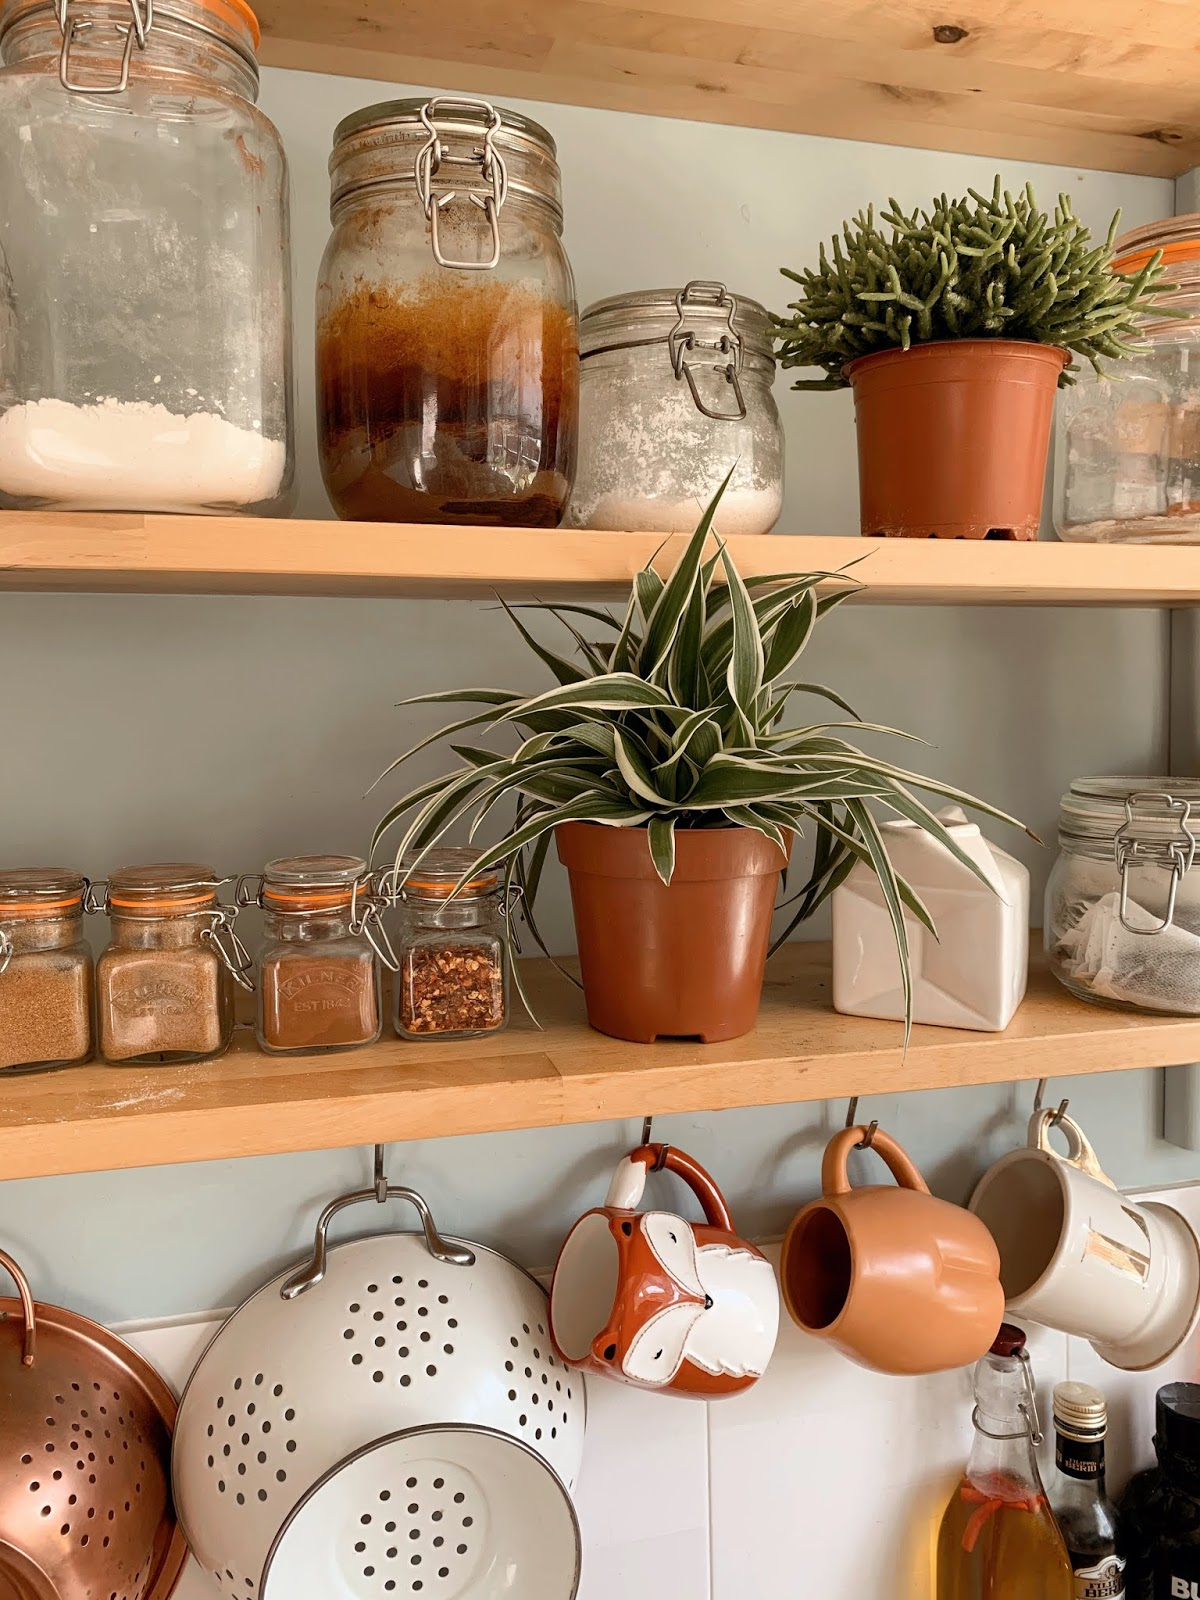 Kitchen Kilner jar organiser  spider plant